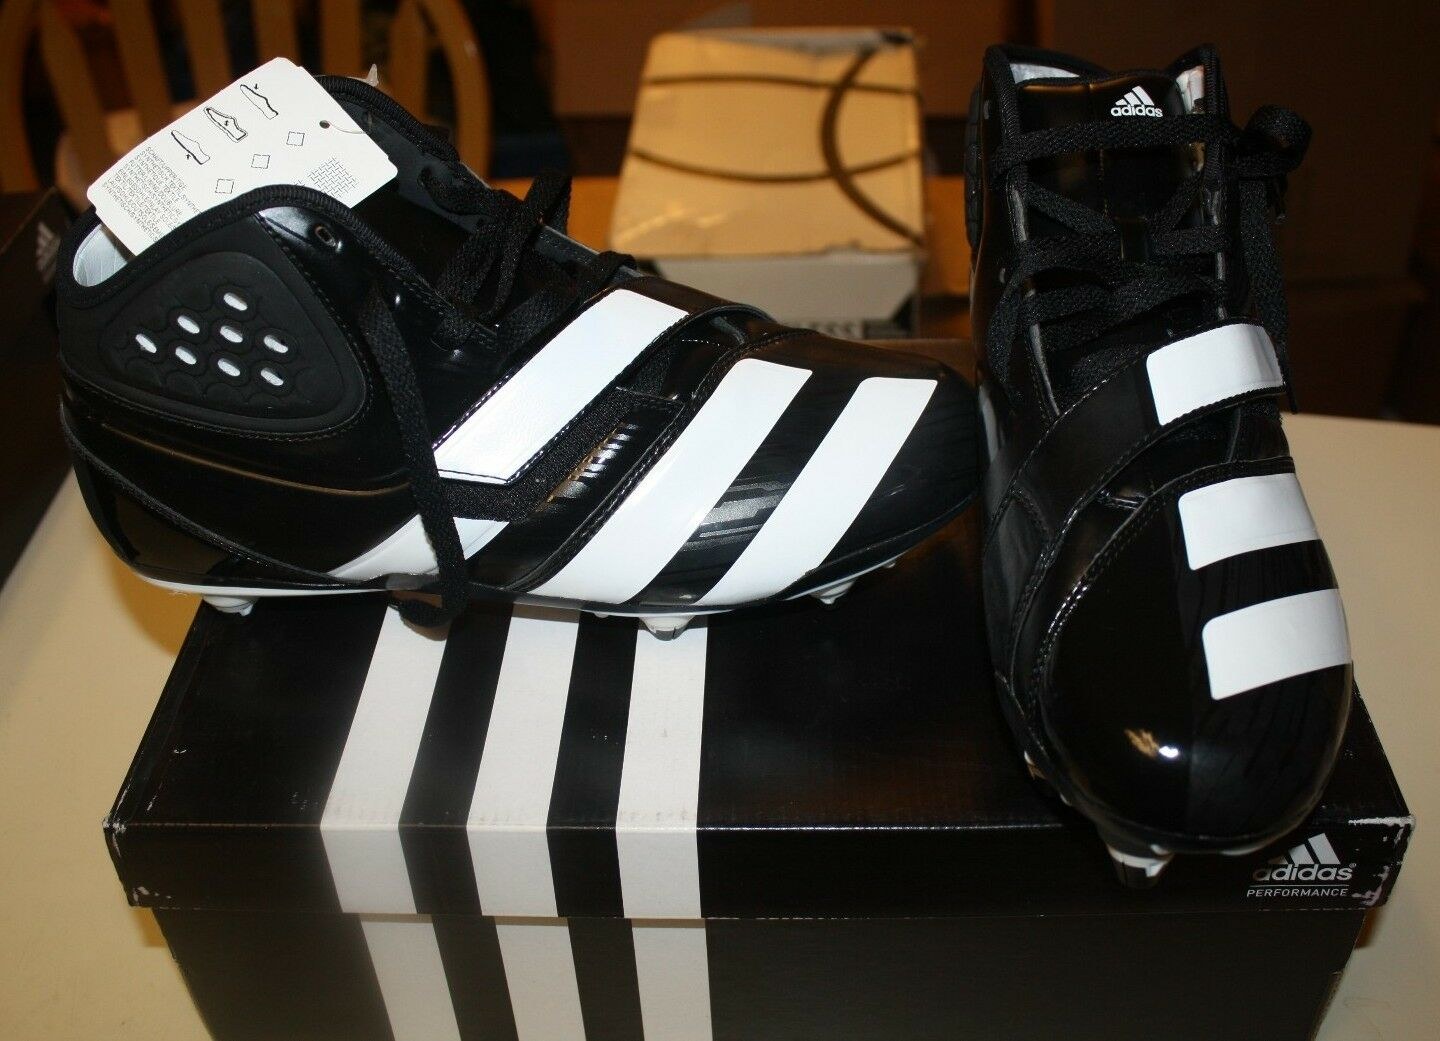 ADIDAS MALICE D SHOES SIZE MENS 9.5 BLACK WHITE FREE SHIPPING NEW IN BOX